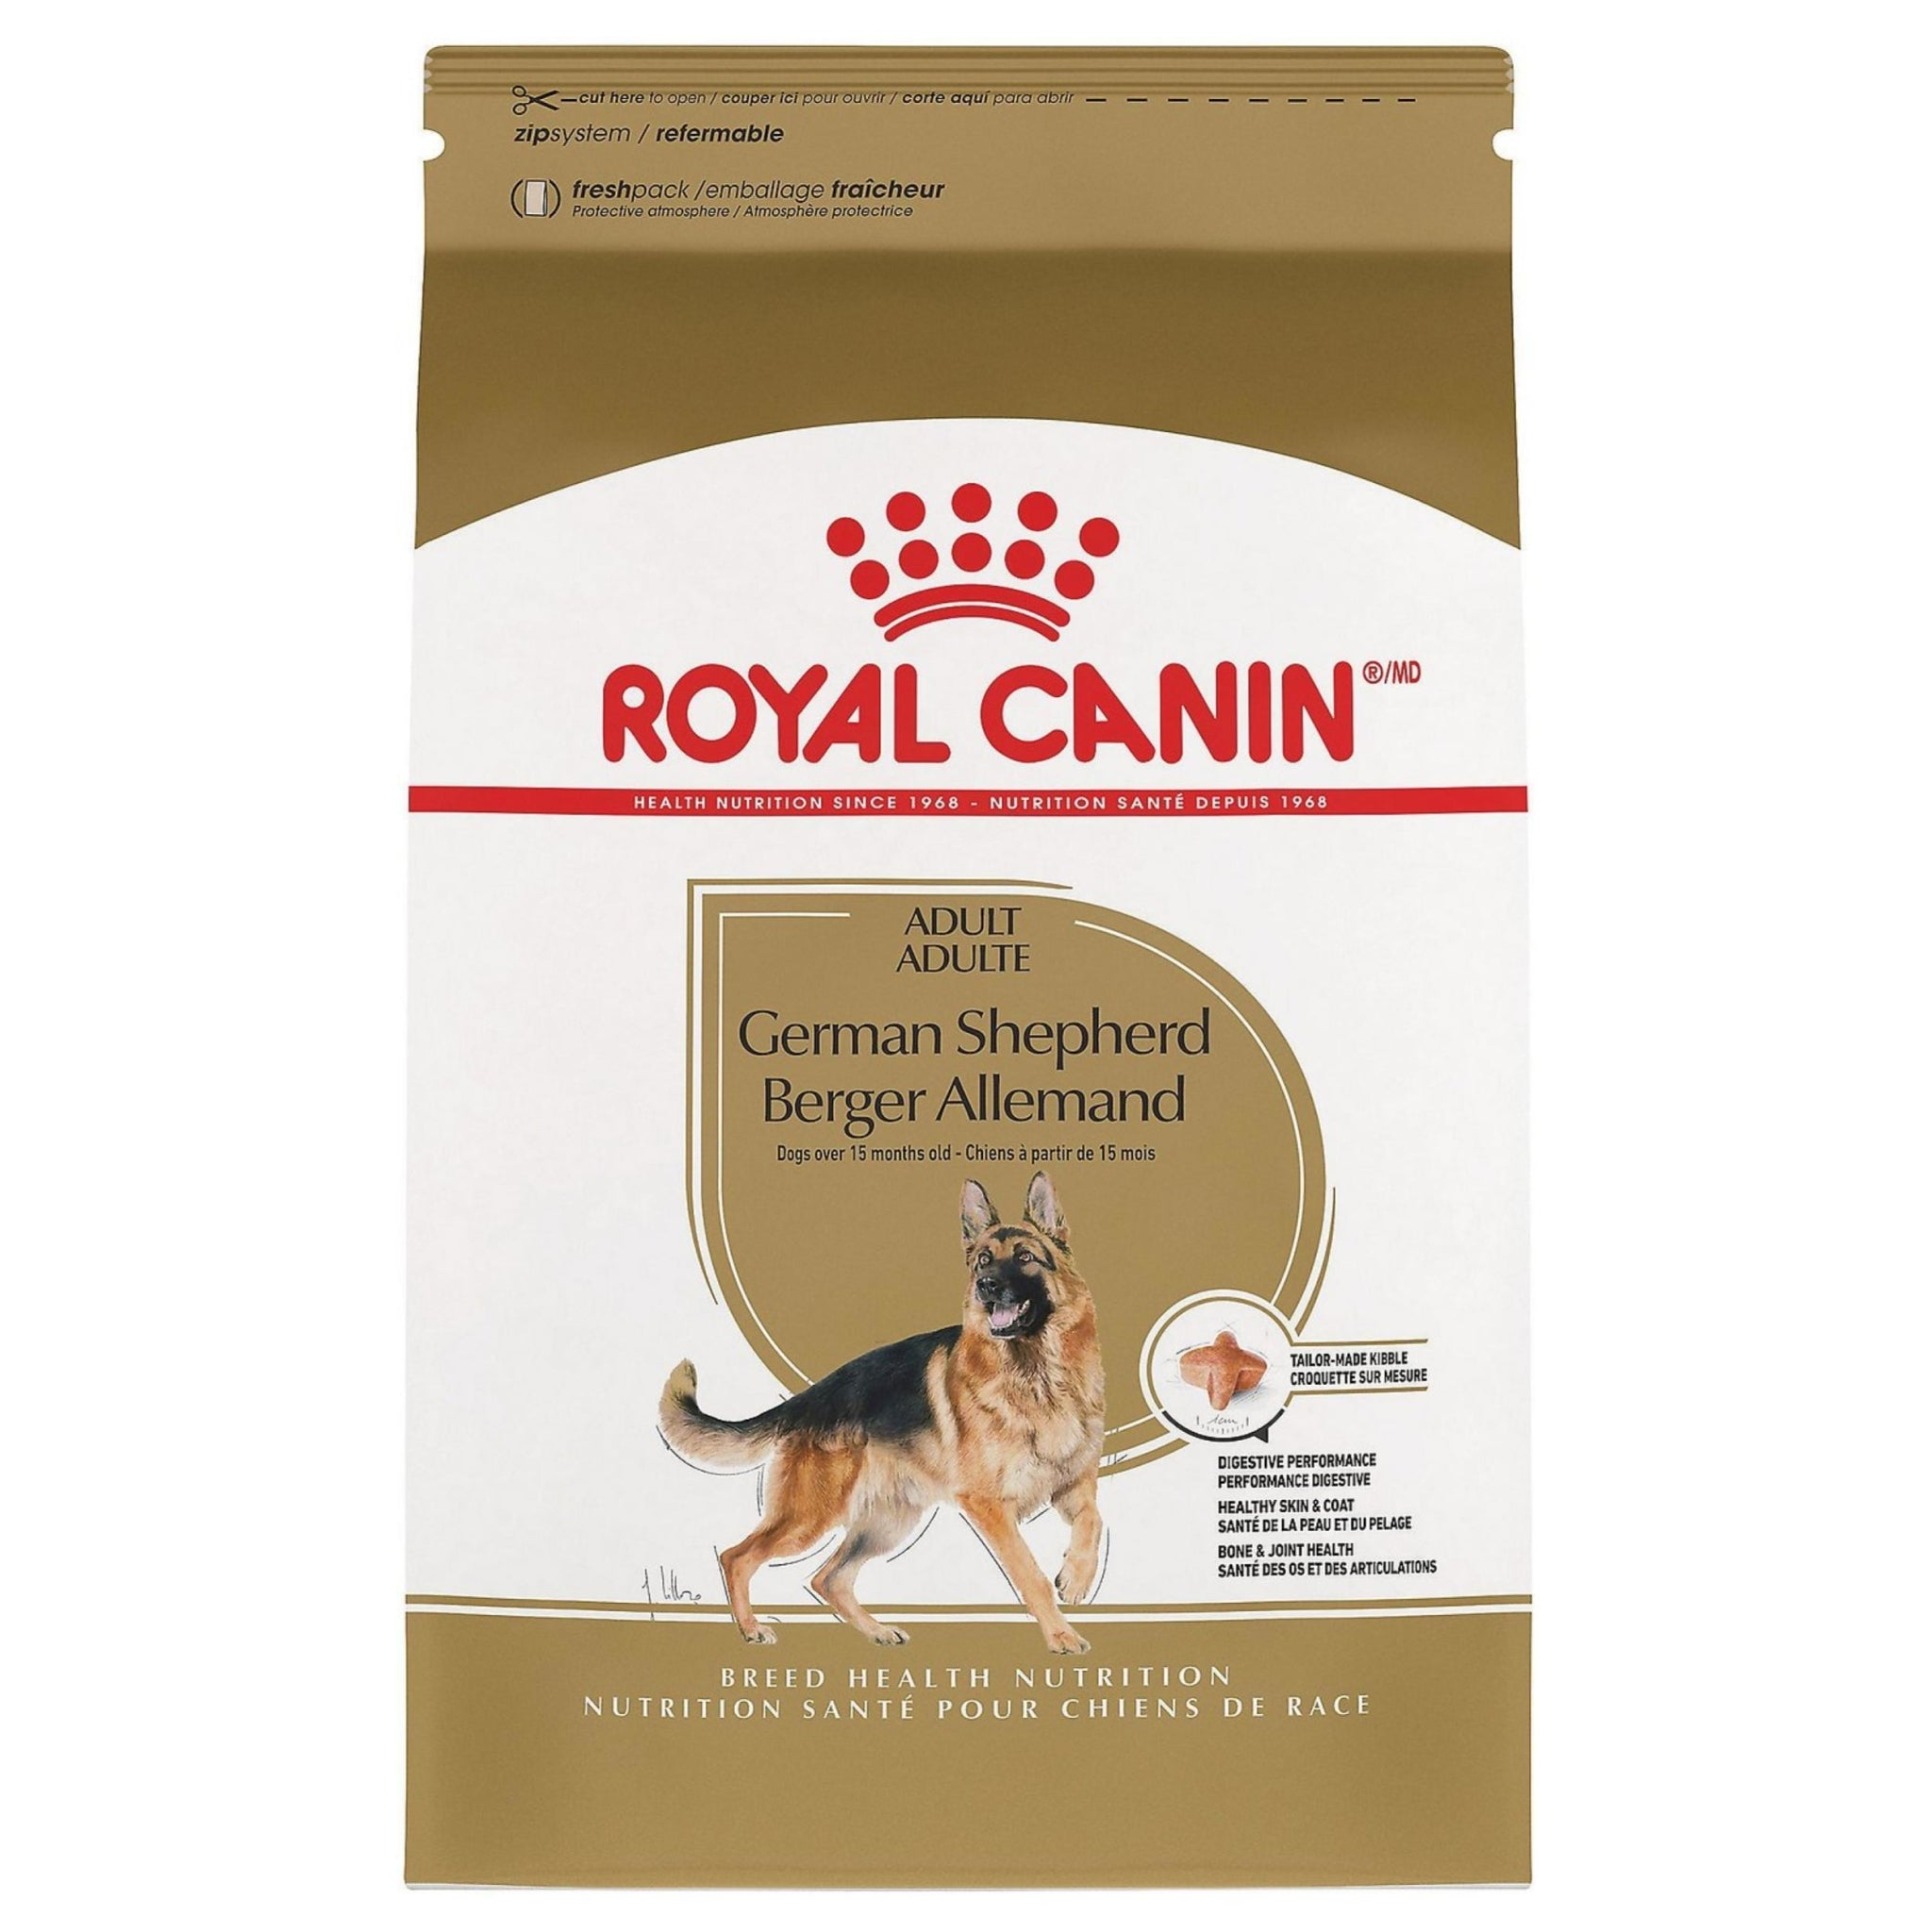 Royal Canin German Shepherd Adult Dog Food - Poochles